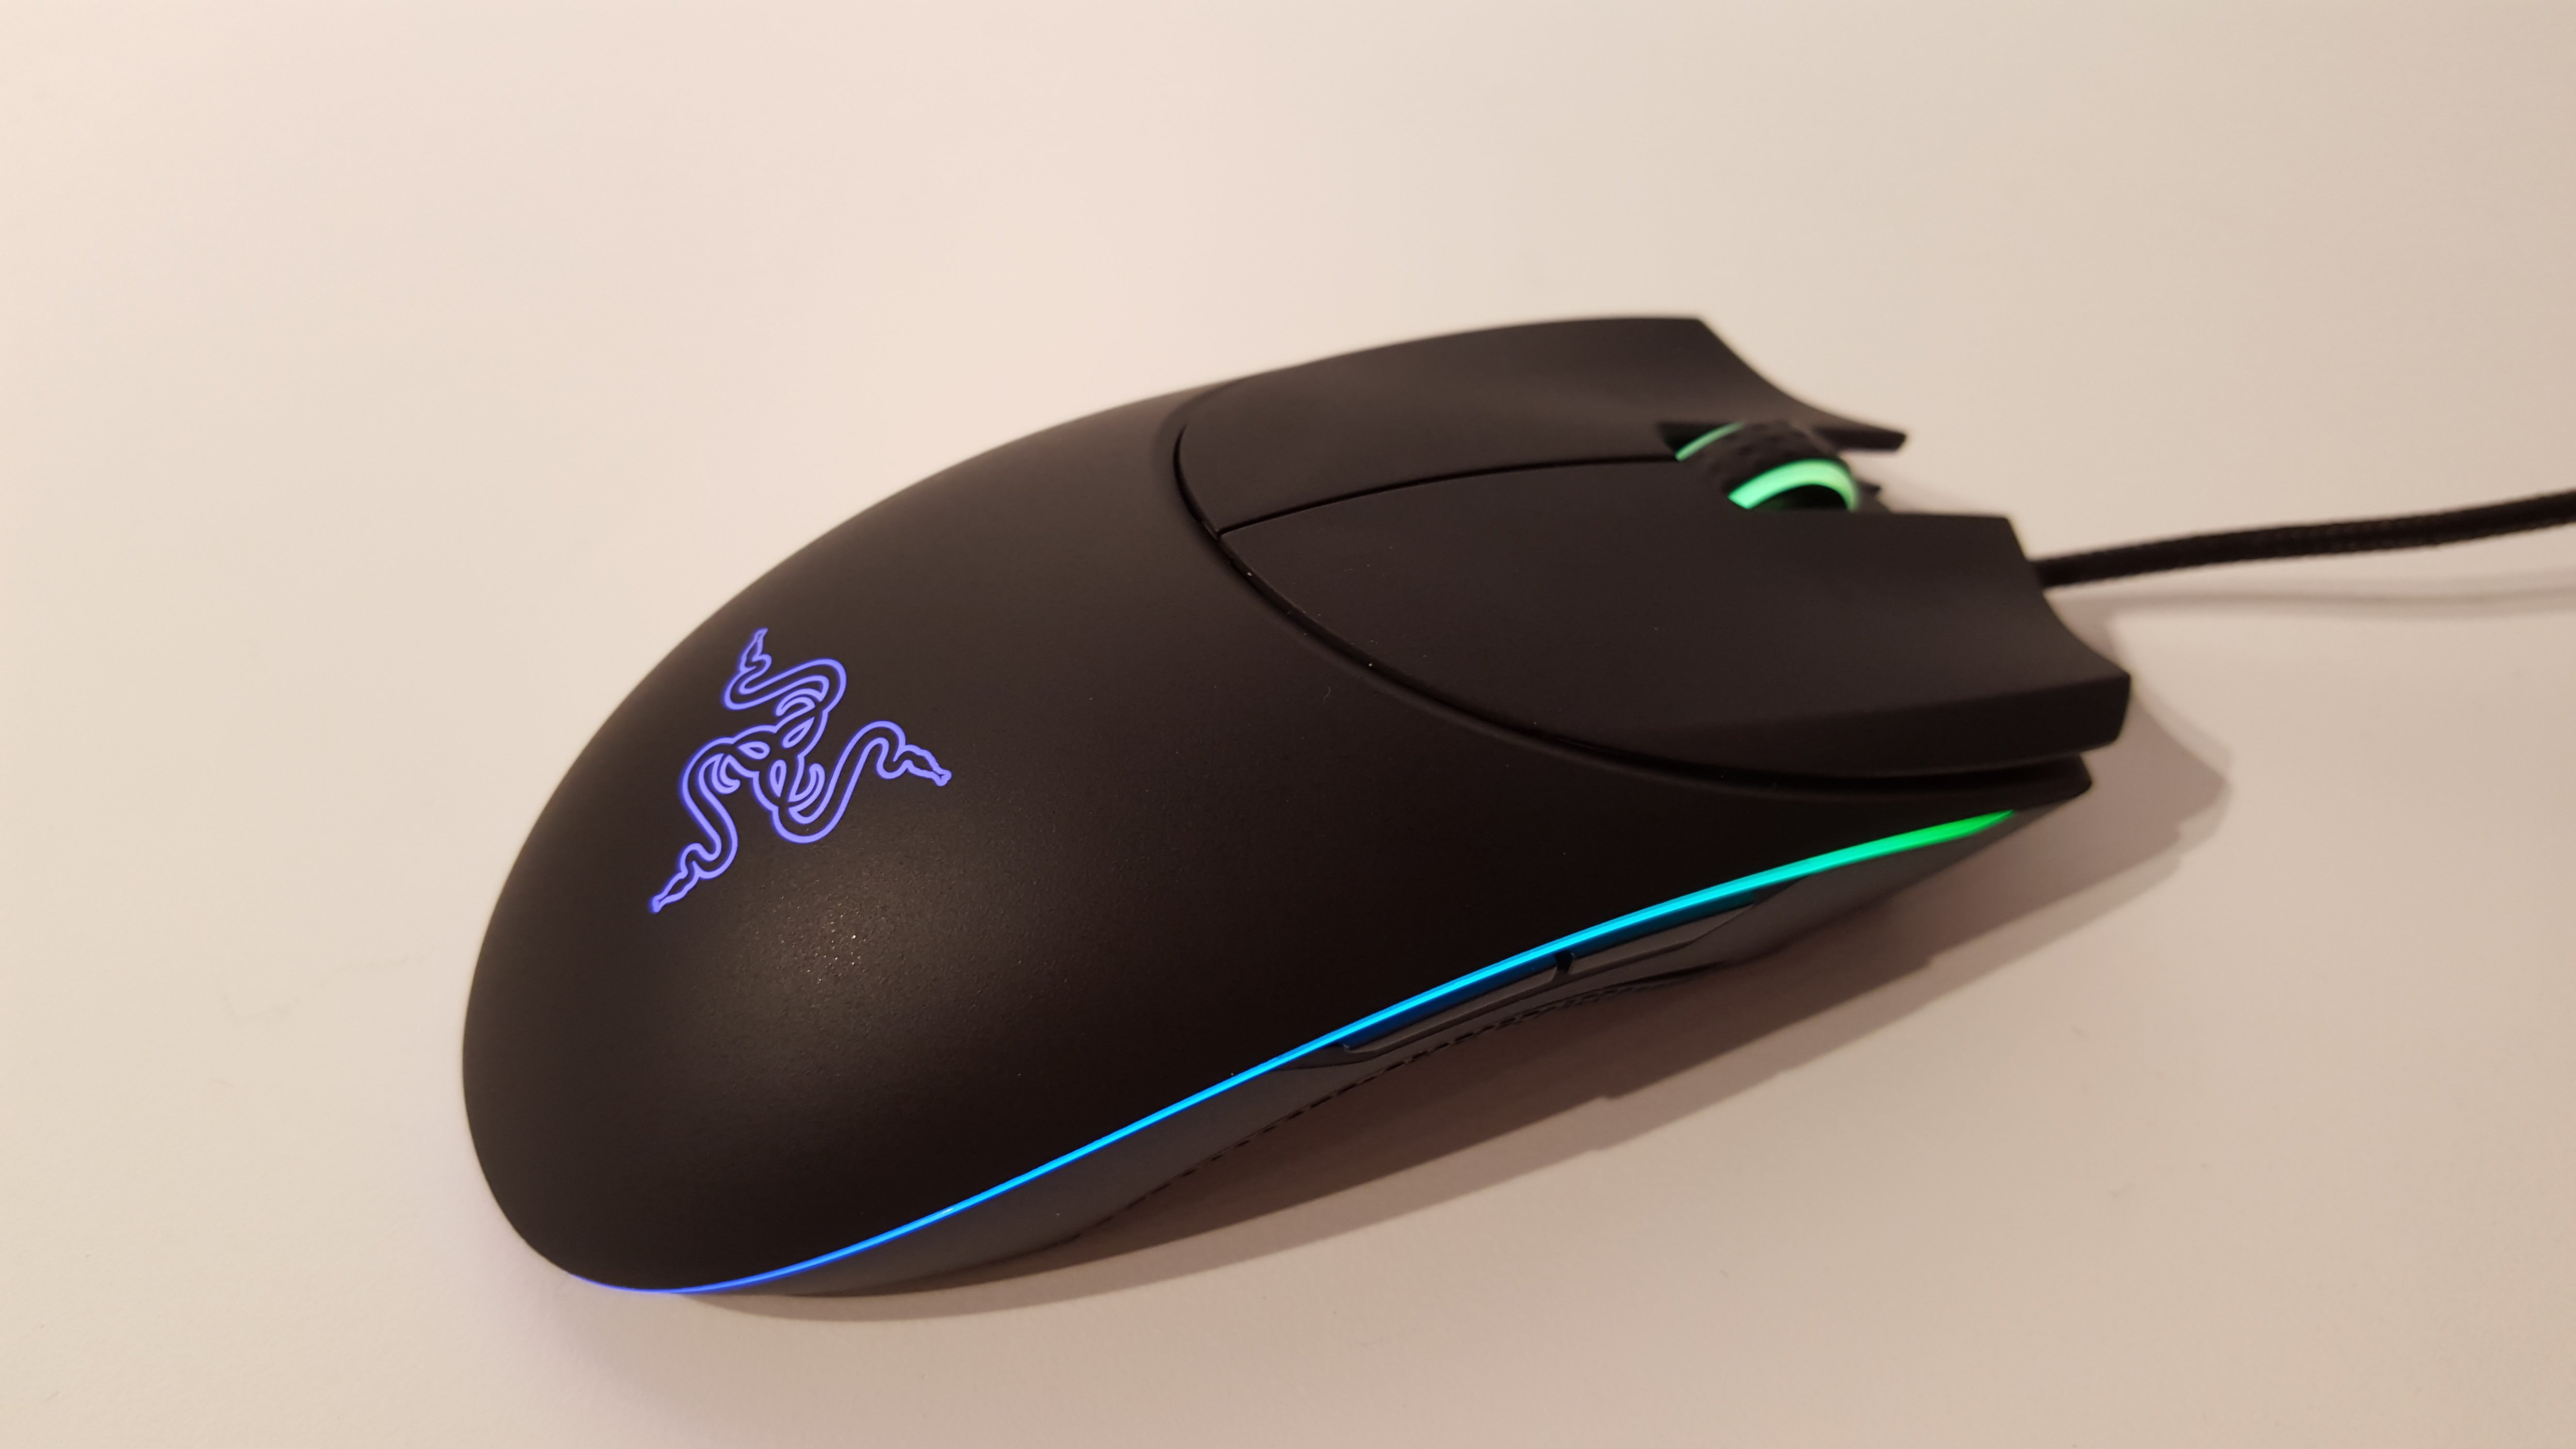 short claw mice for gaming